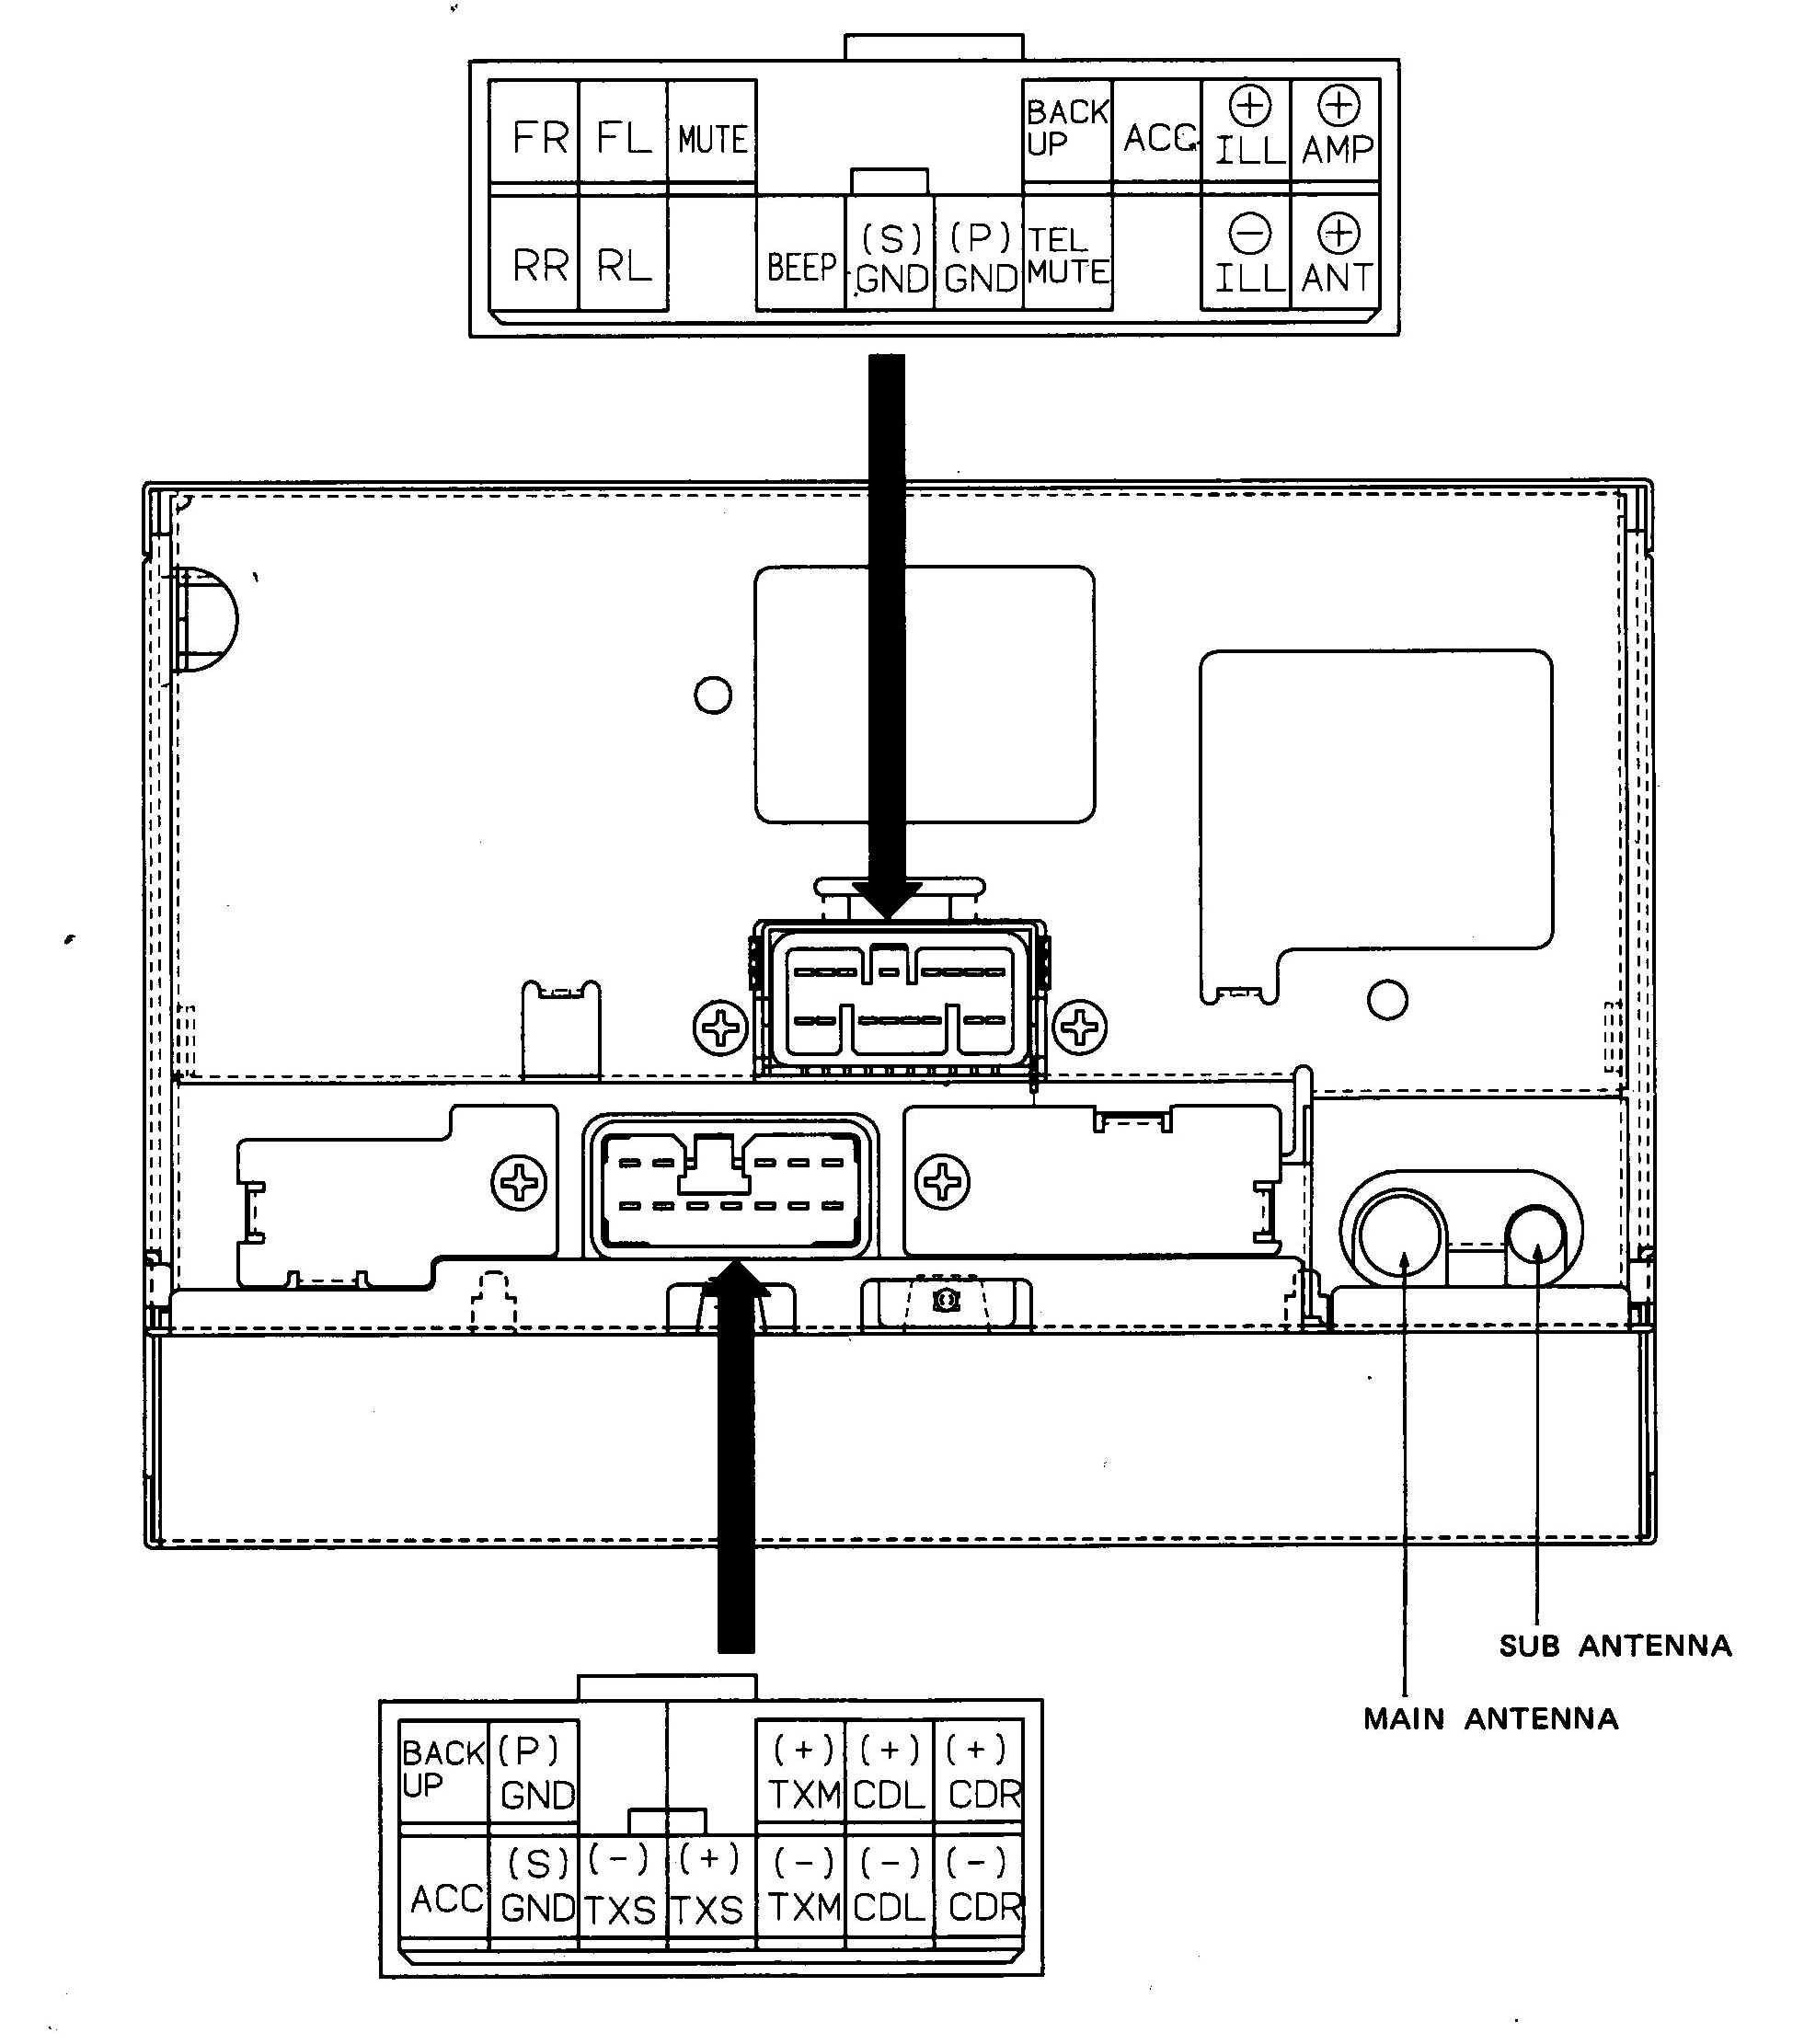 kenwood kdc 138 wiring diagram wiring diagrams and schematics kenwood z828 uf4 wiring diagram diagrams and schematics